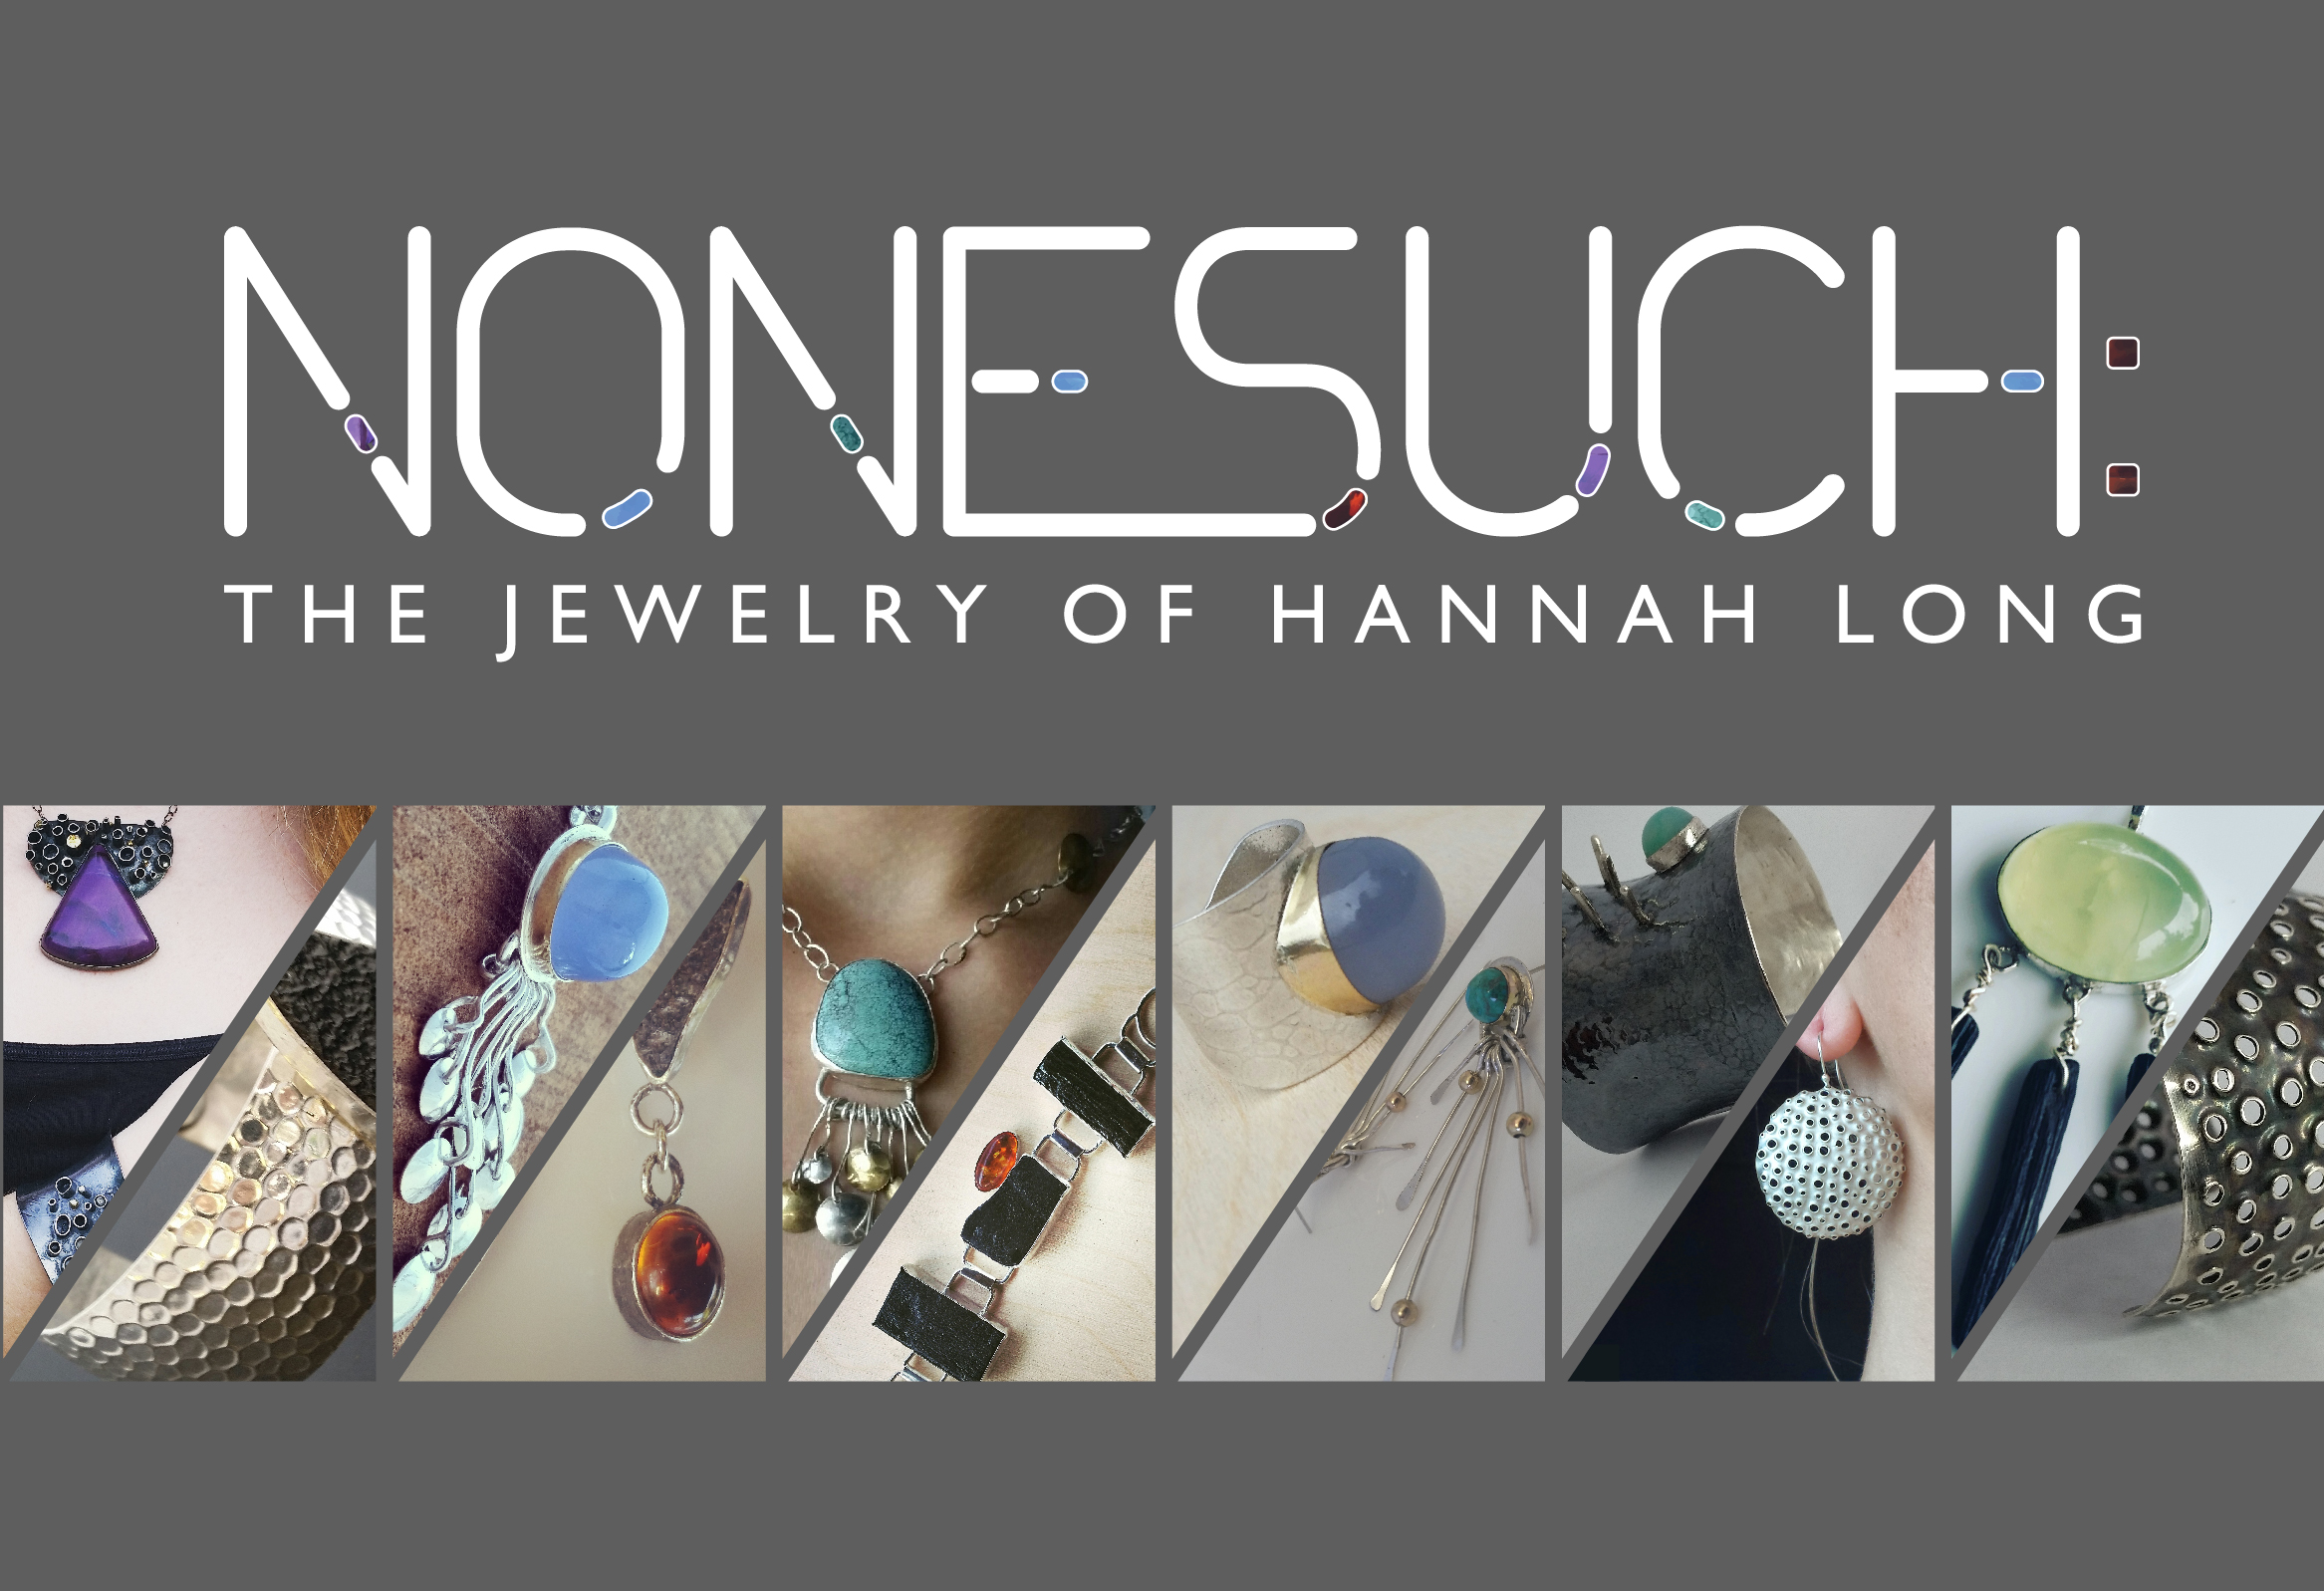 NONESUCH: The Jewelry of Hannah Long